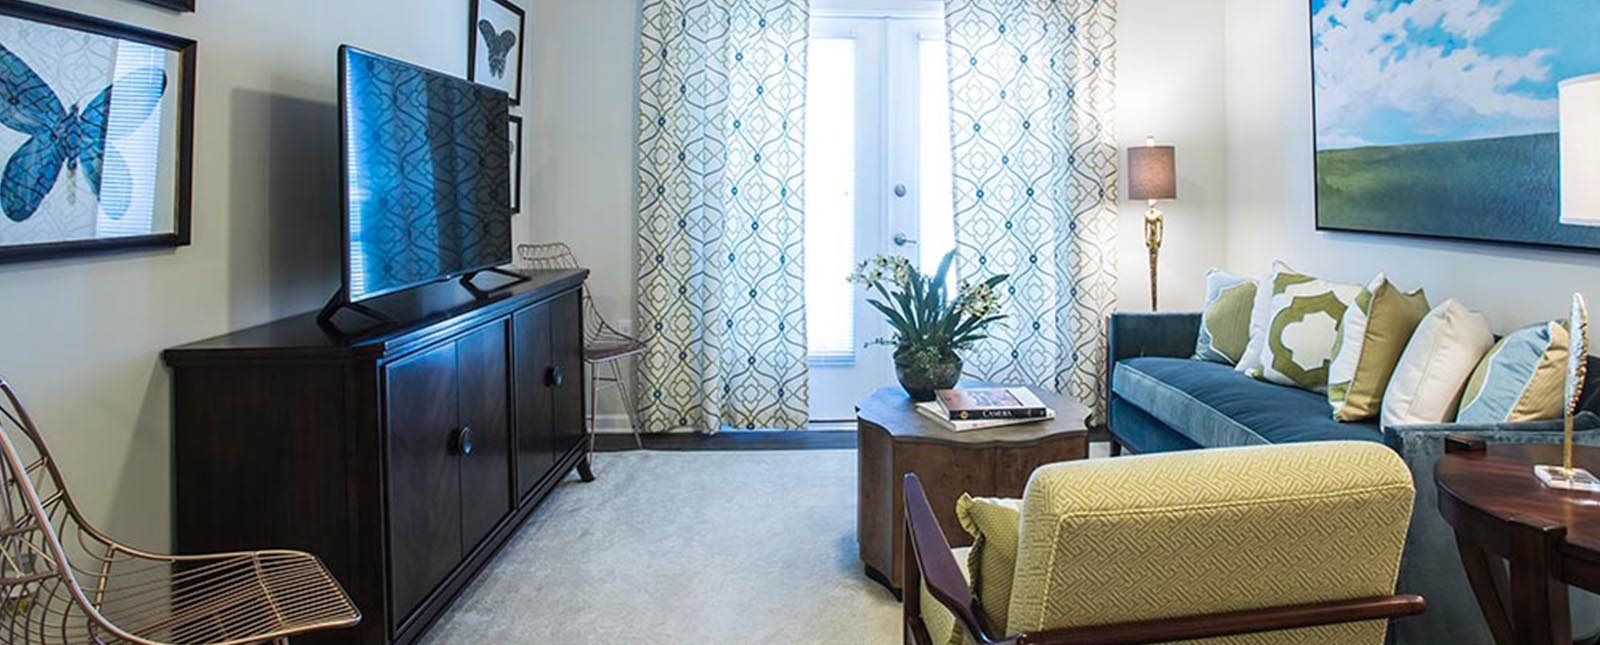 Living Room furniture of The Haven luxury apartments in Malvern, PA